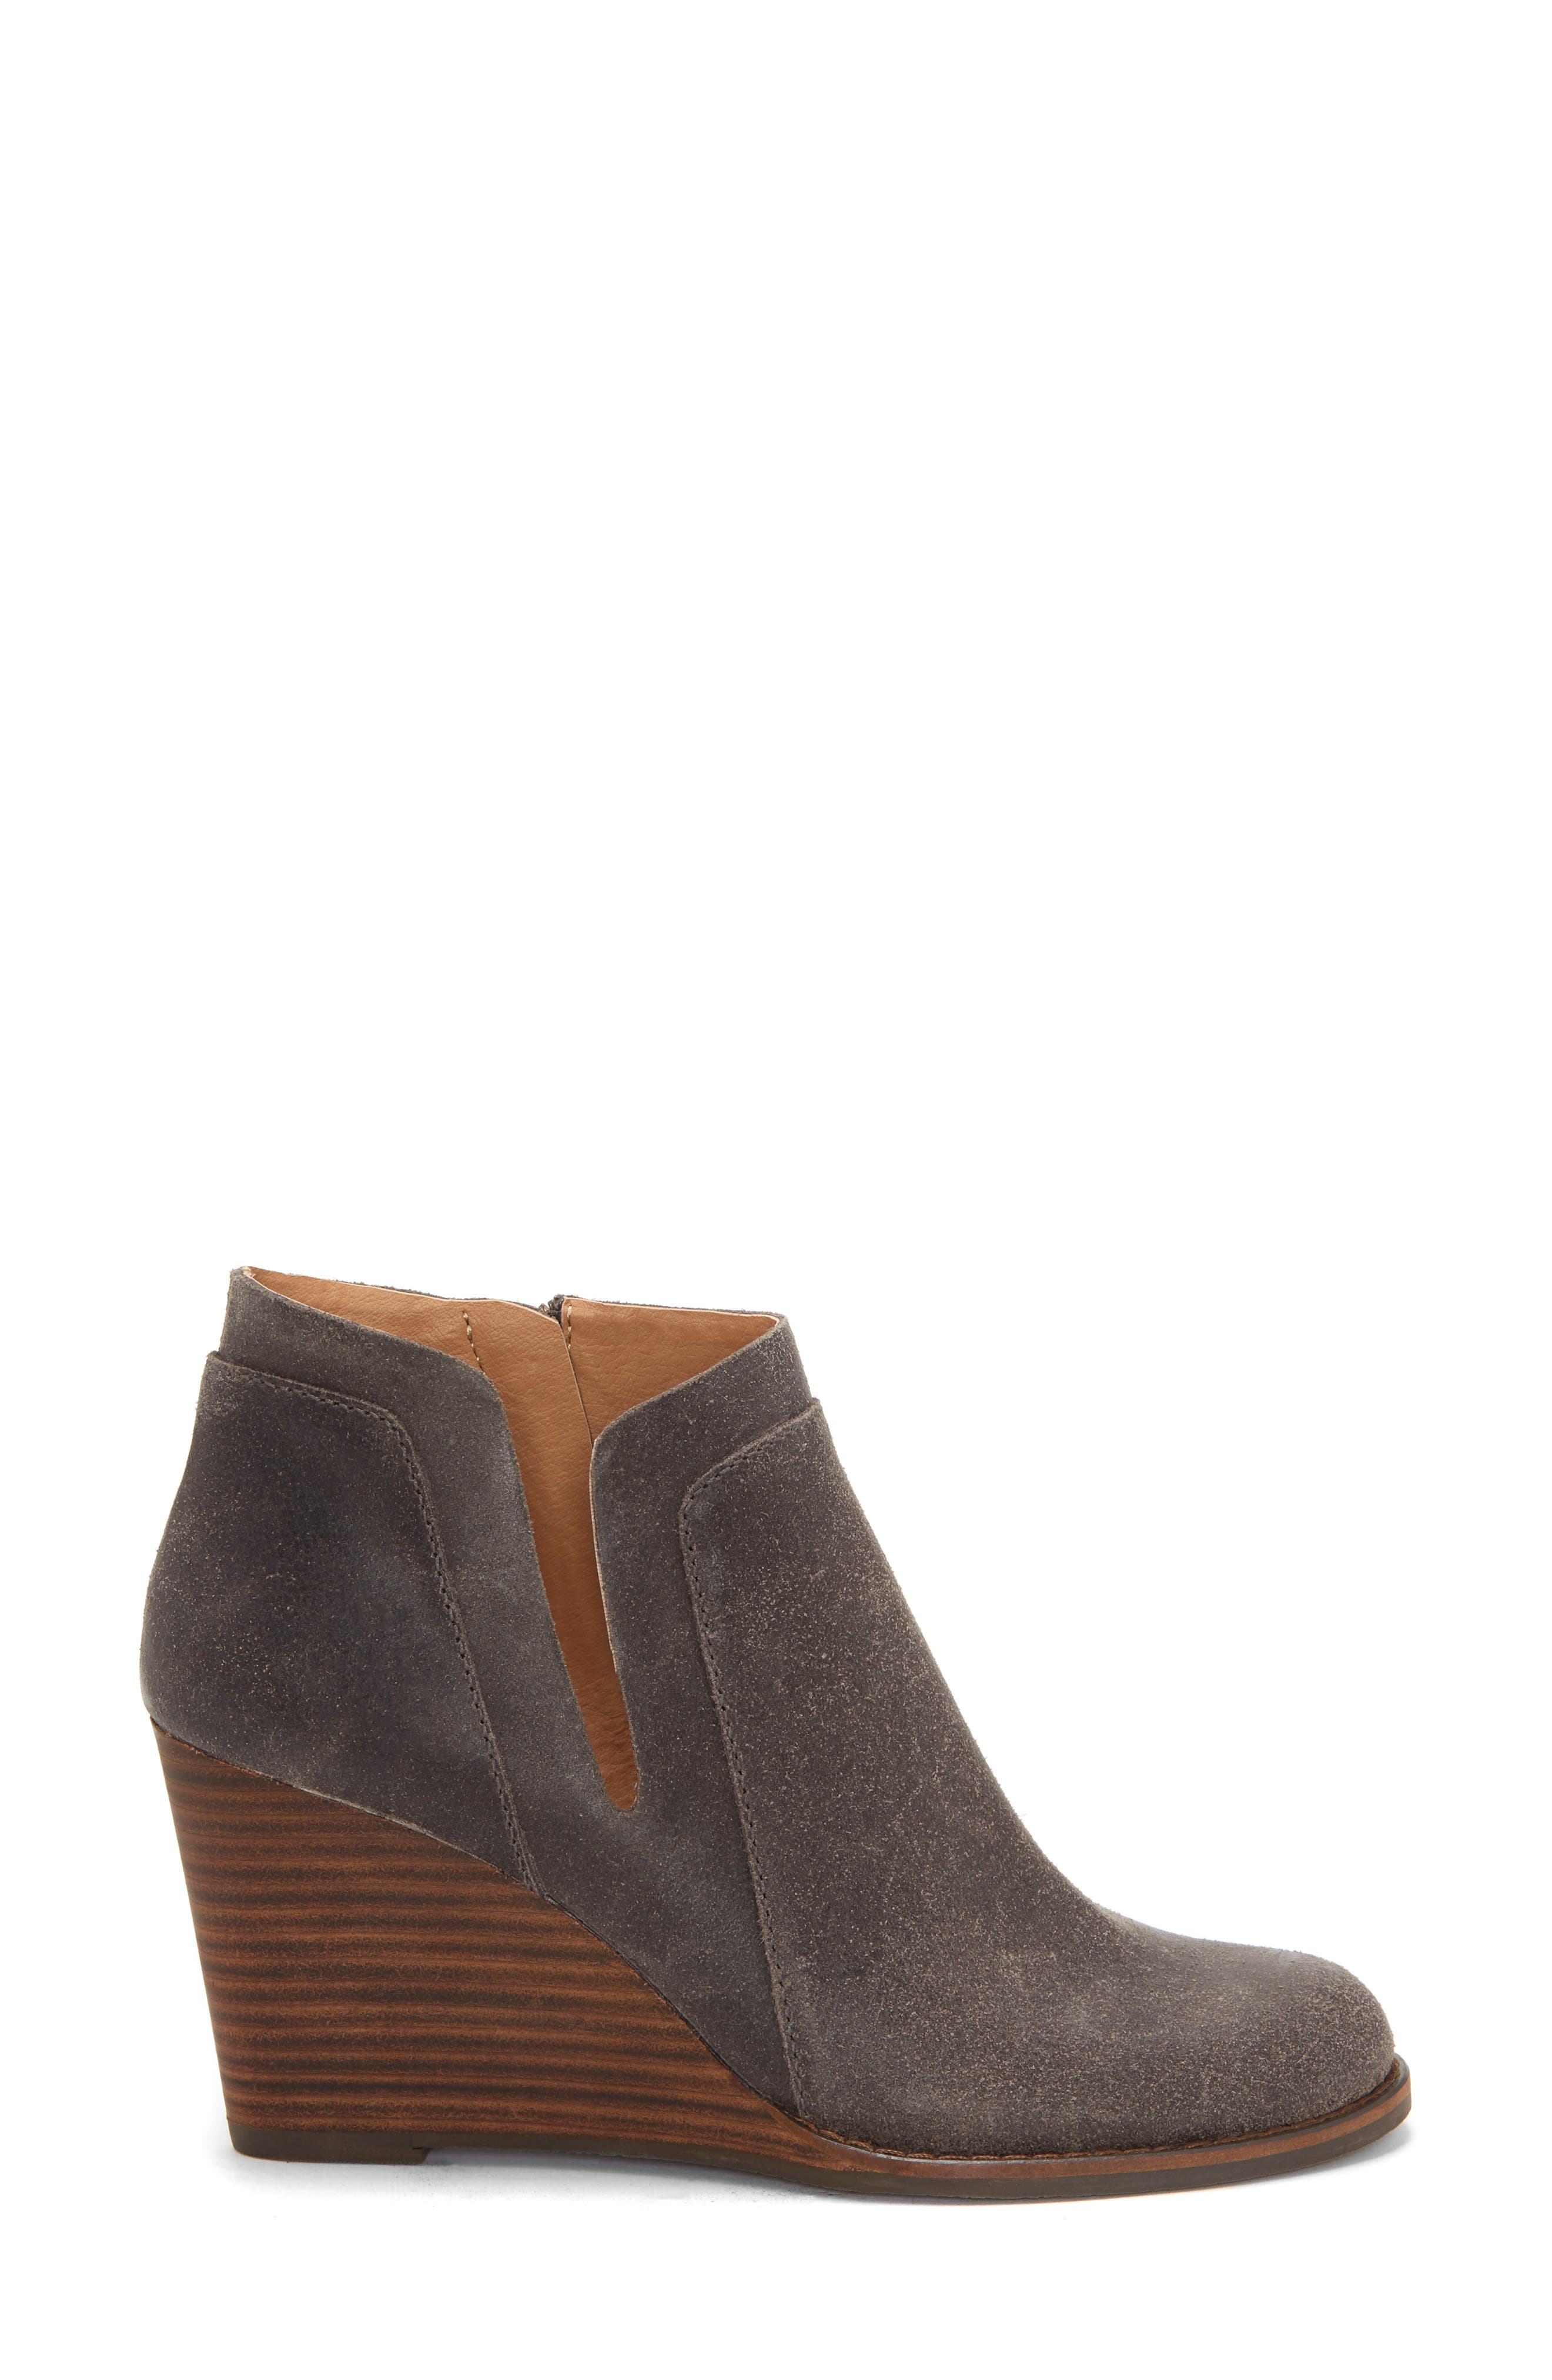 LUCKY BRAND, Yabba Wedge Bootie, Alternate thumbnail 3, color, STORM NUBUCK